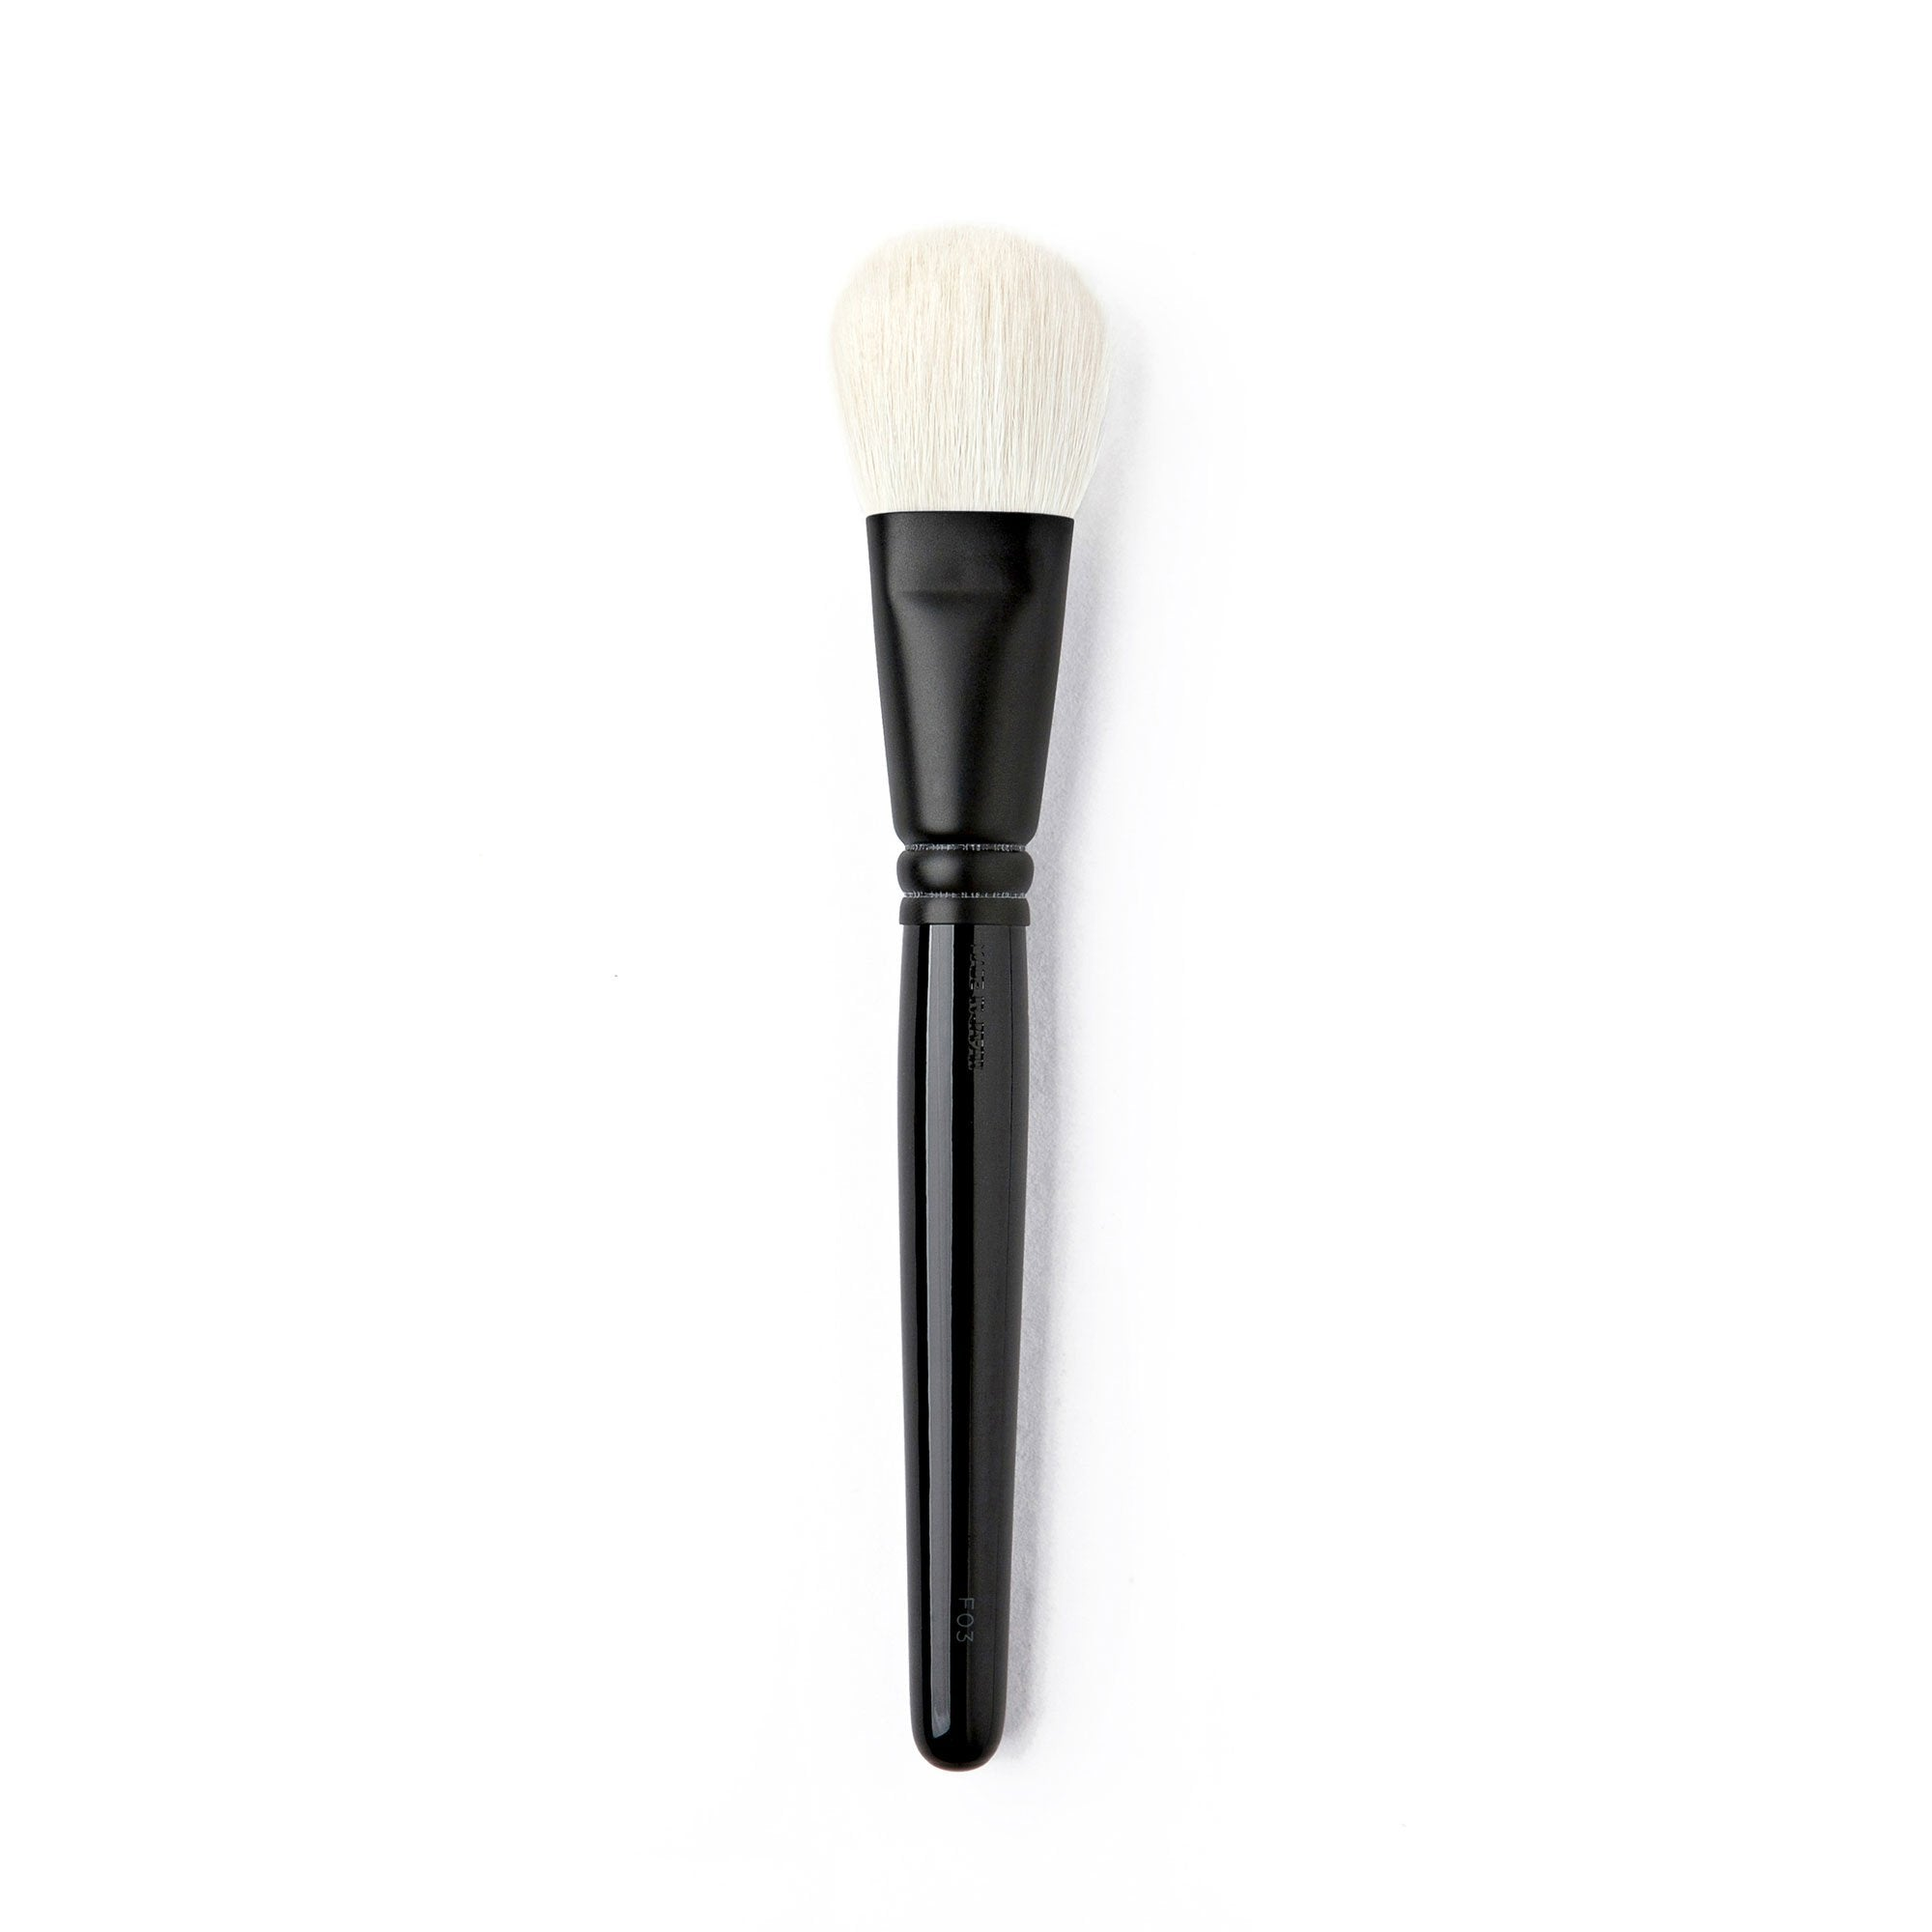 F03 – Blush/Powder Brush